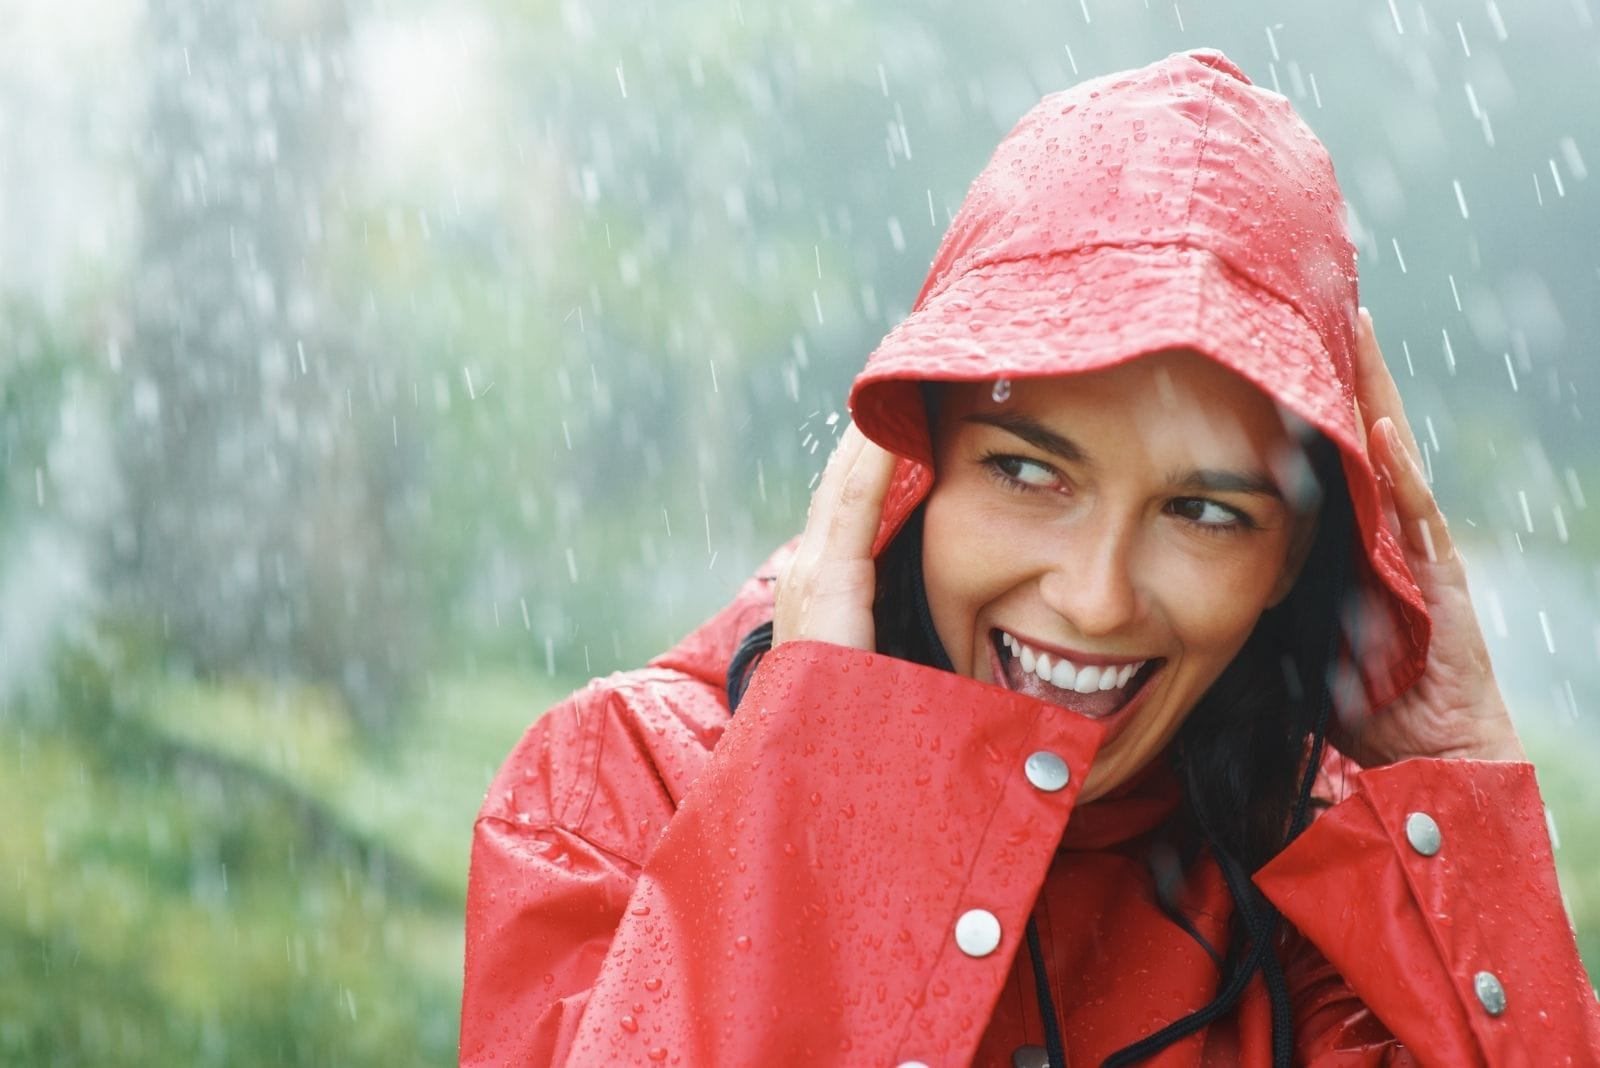 woman smiling white out in the rain wearing raincoat